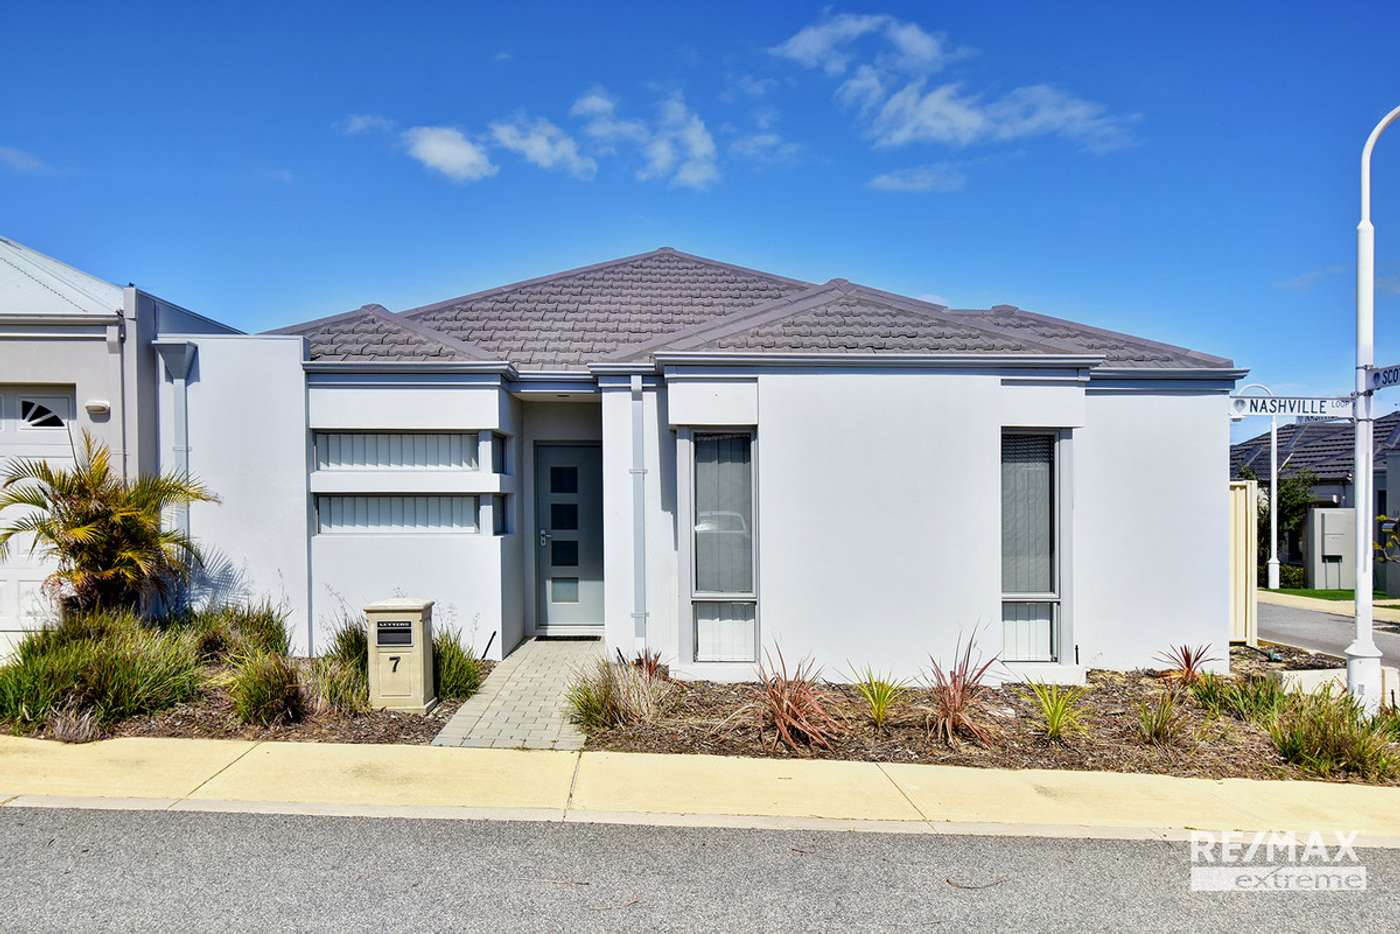 Main view of Homely house listing, 7 Nashville Loop, Currambine WA 6028